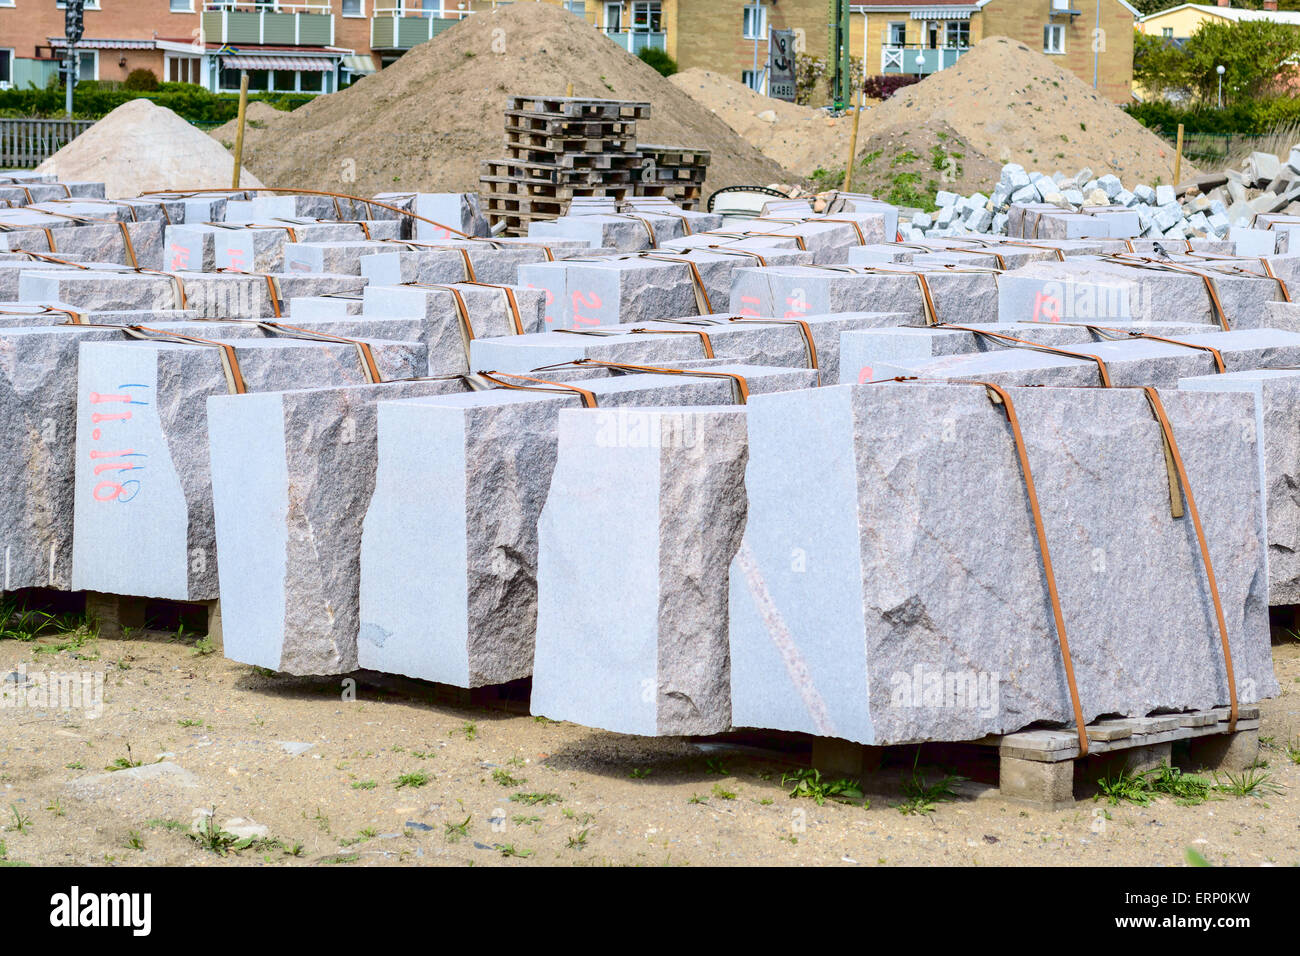 Large slabs of granite secured by belts on pallets. Every stone is ...